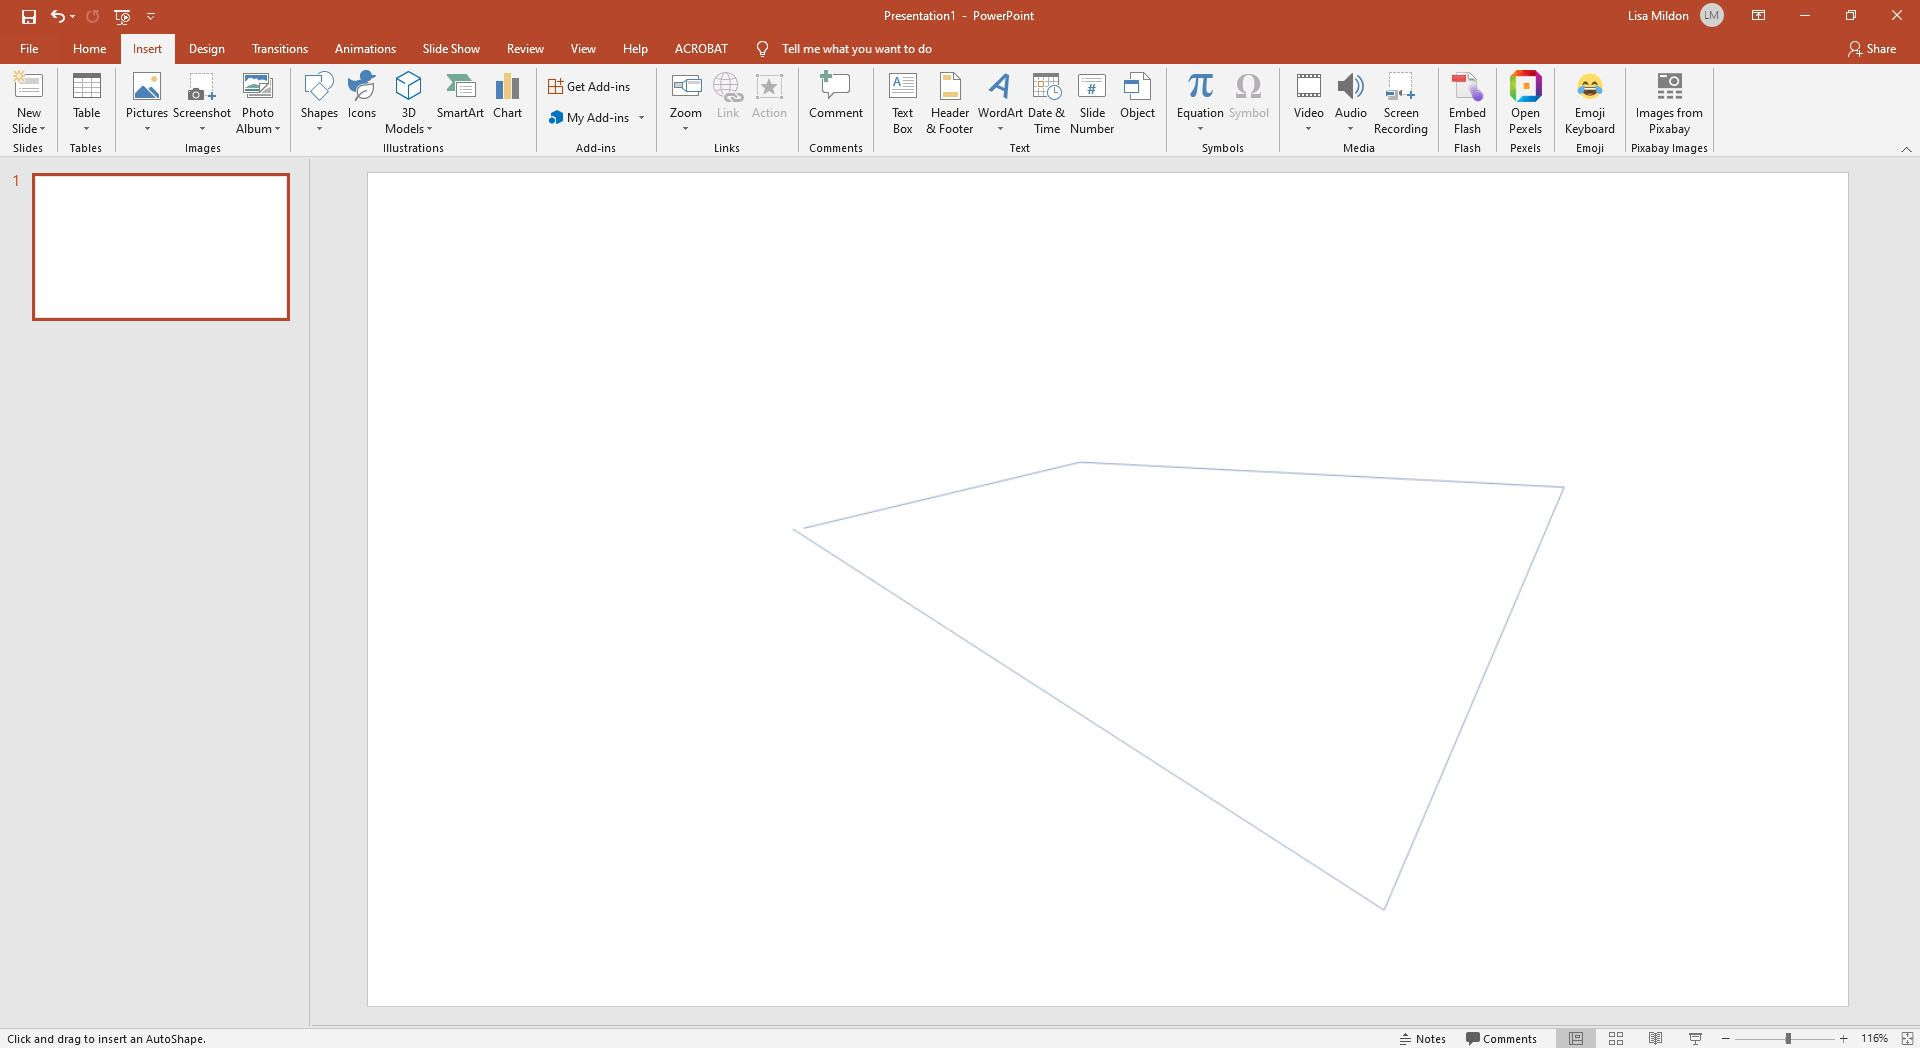 Drawing a custom shape using the Freeform tool in Powerpoint